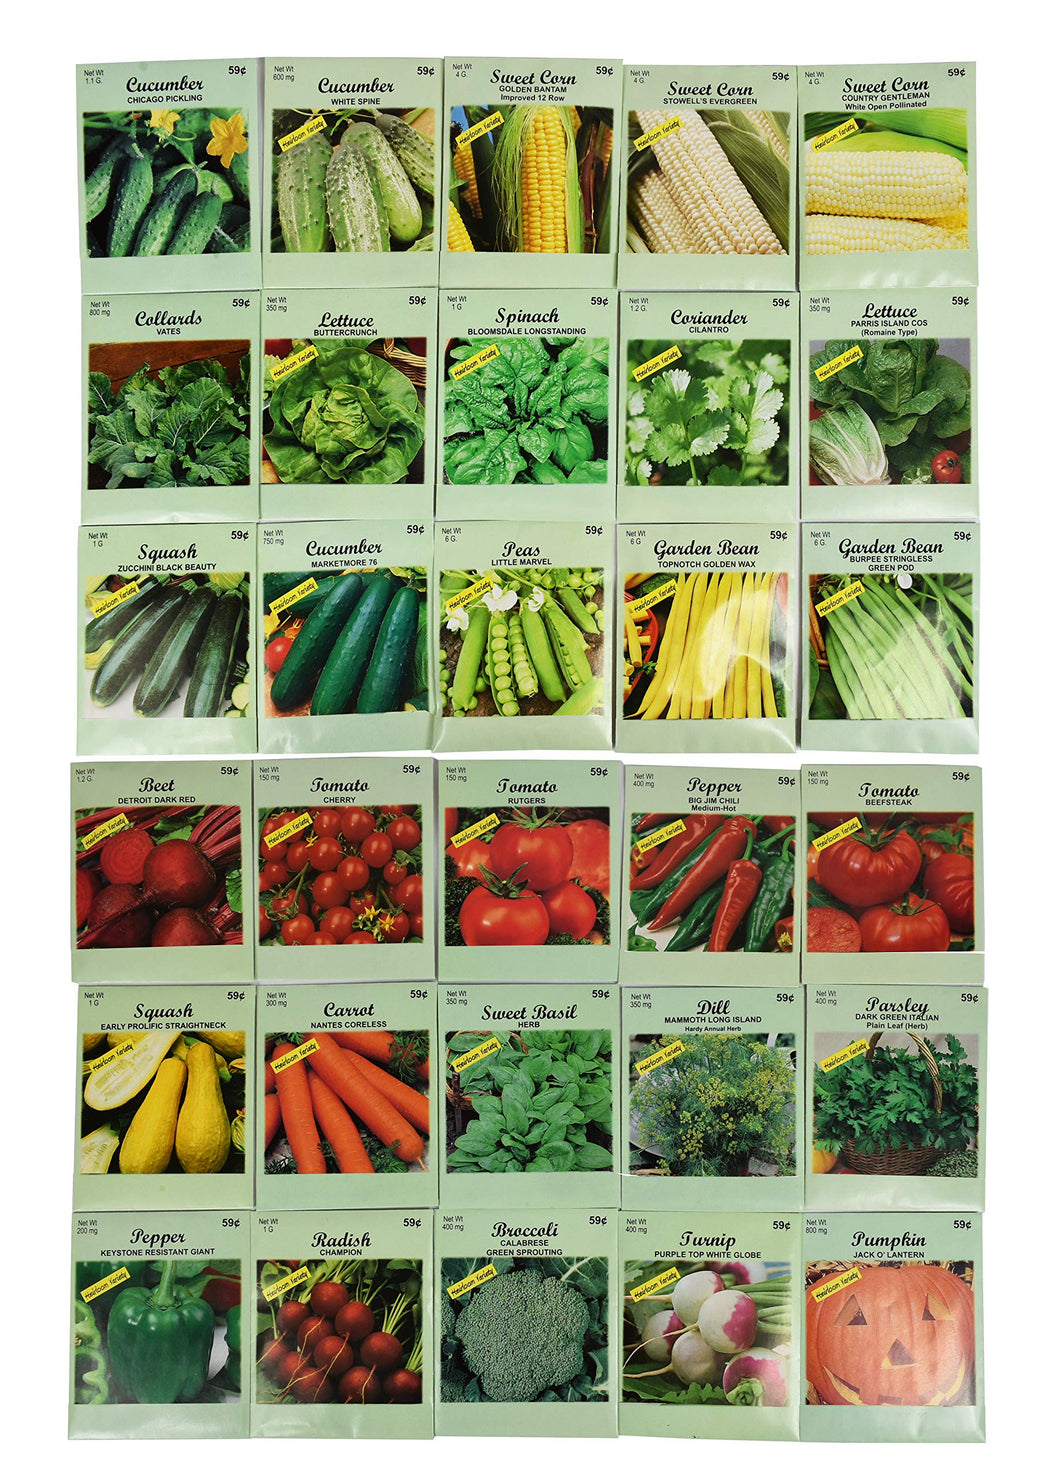 Set of 30 Pack Vegetable Seeds! 30 Varieties! Create a Deluxe Garden! All Seeds are Heirloom, 100% Non-GMO! by Black Duck Brand 30 Different Varieties